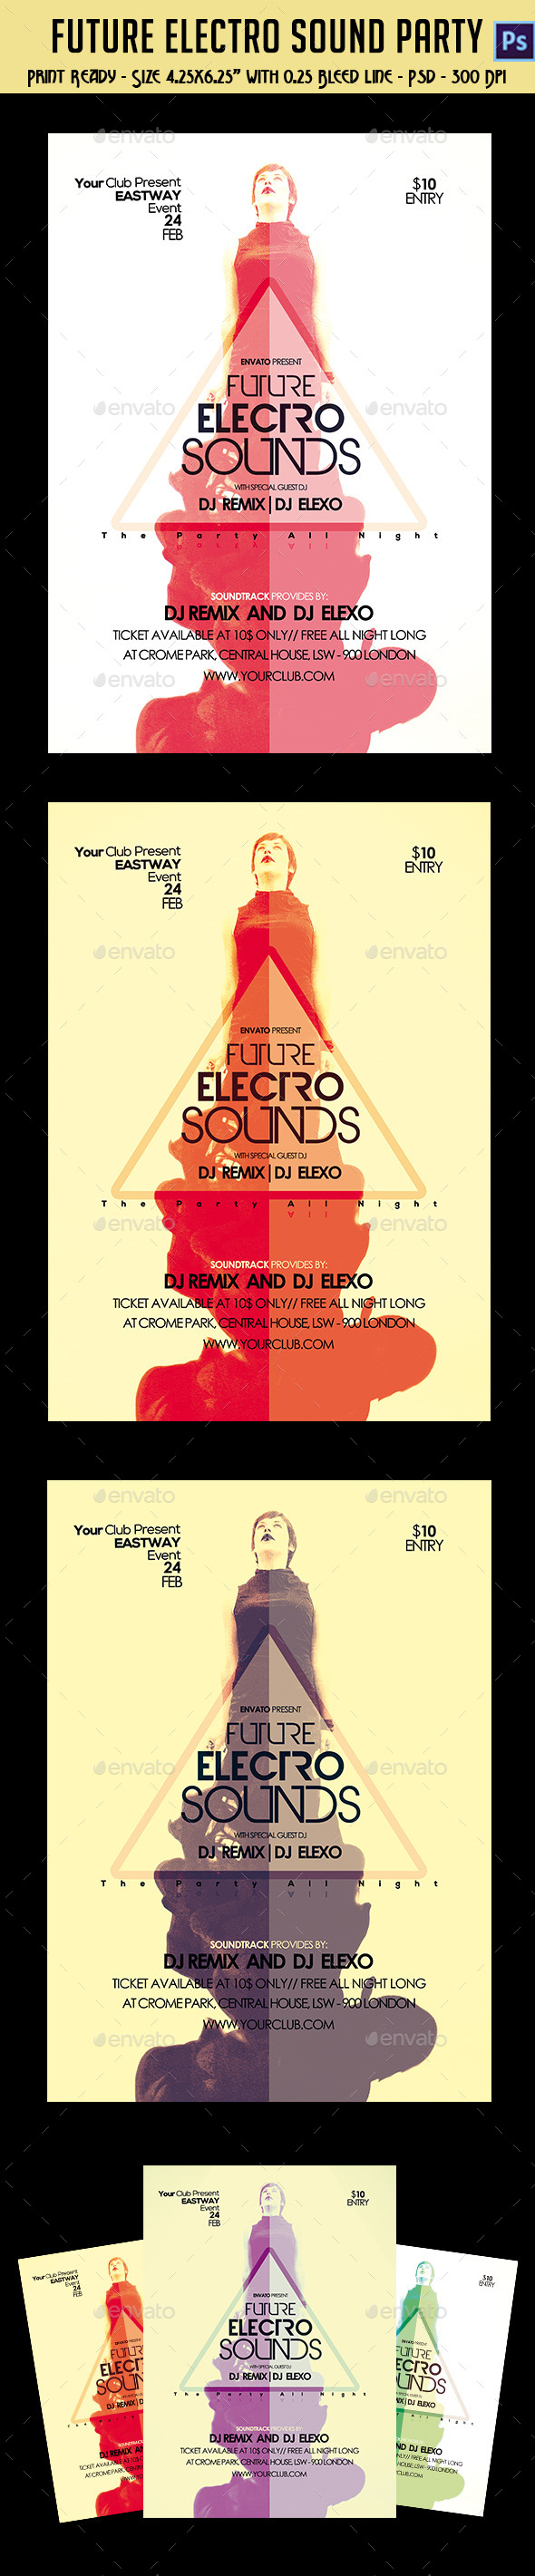 GraphicRiver Future Electro Sounds Party Flyer 10243377